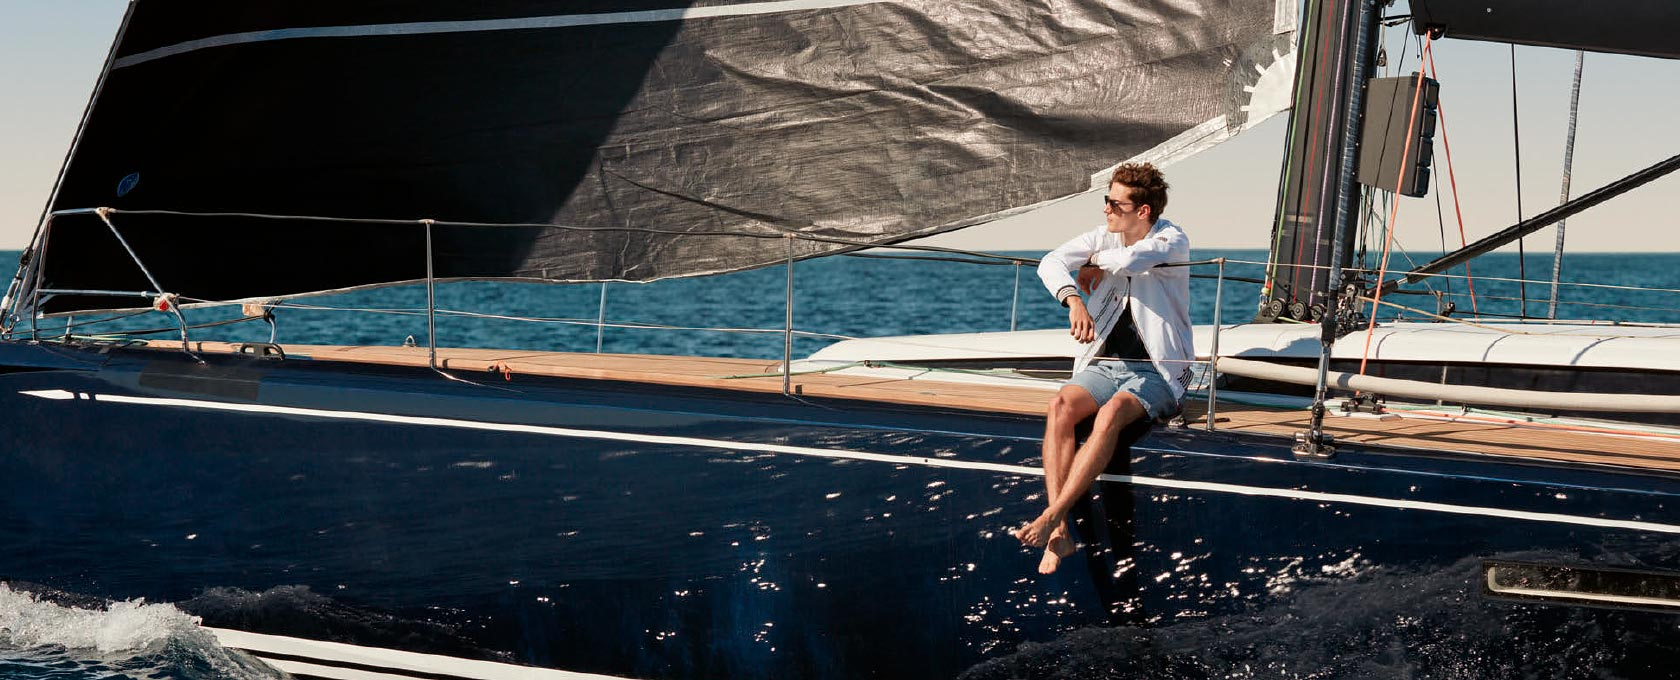 BMW Yachtsport